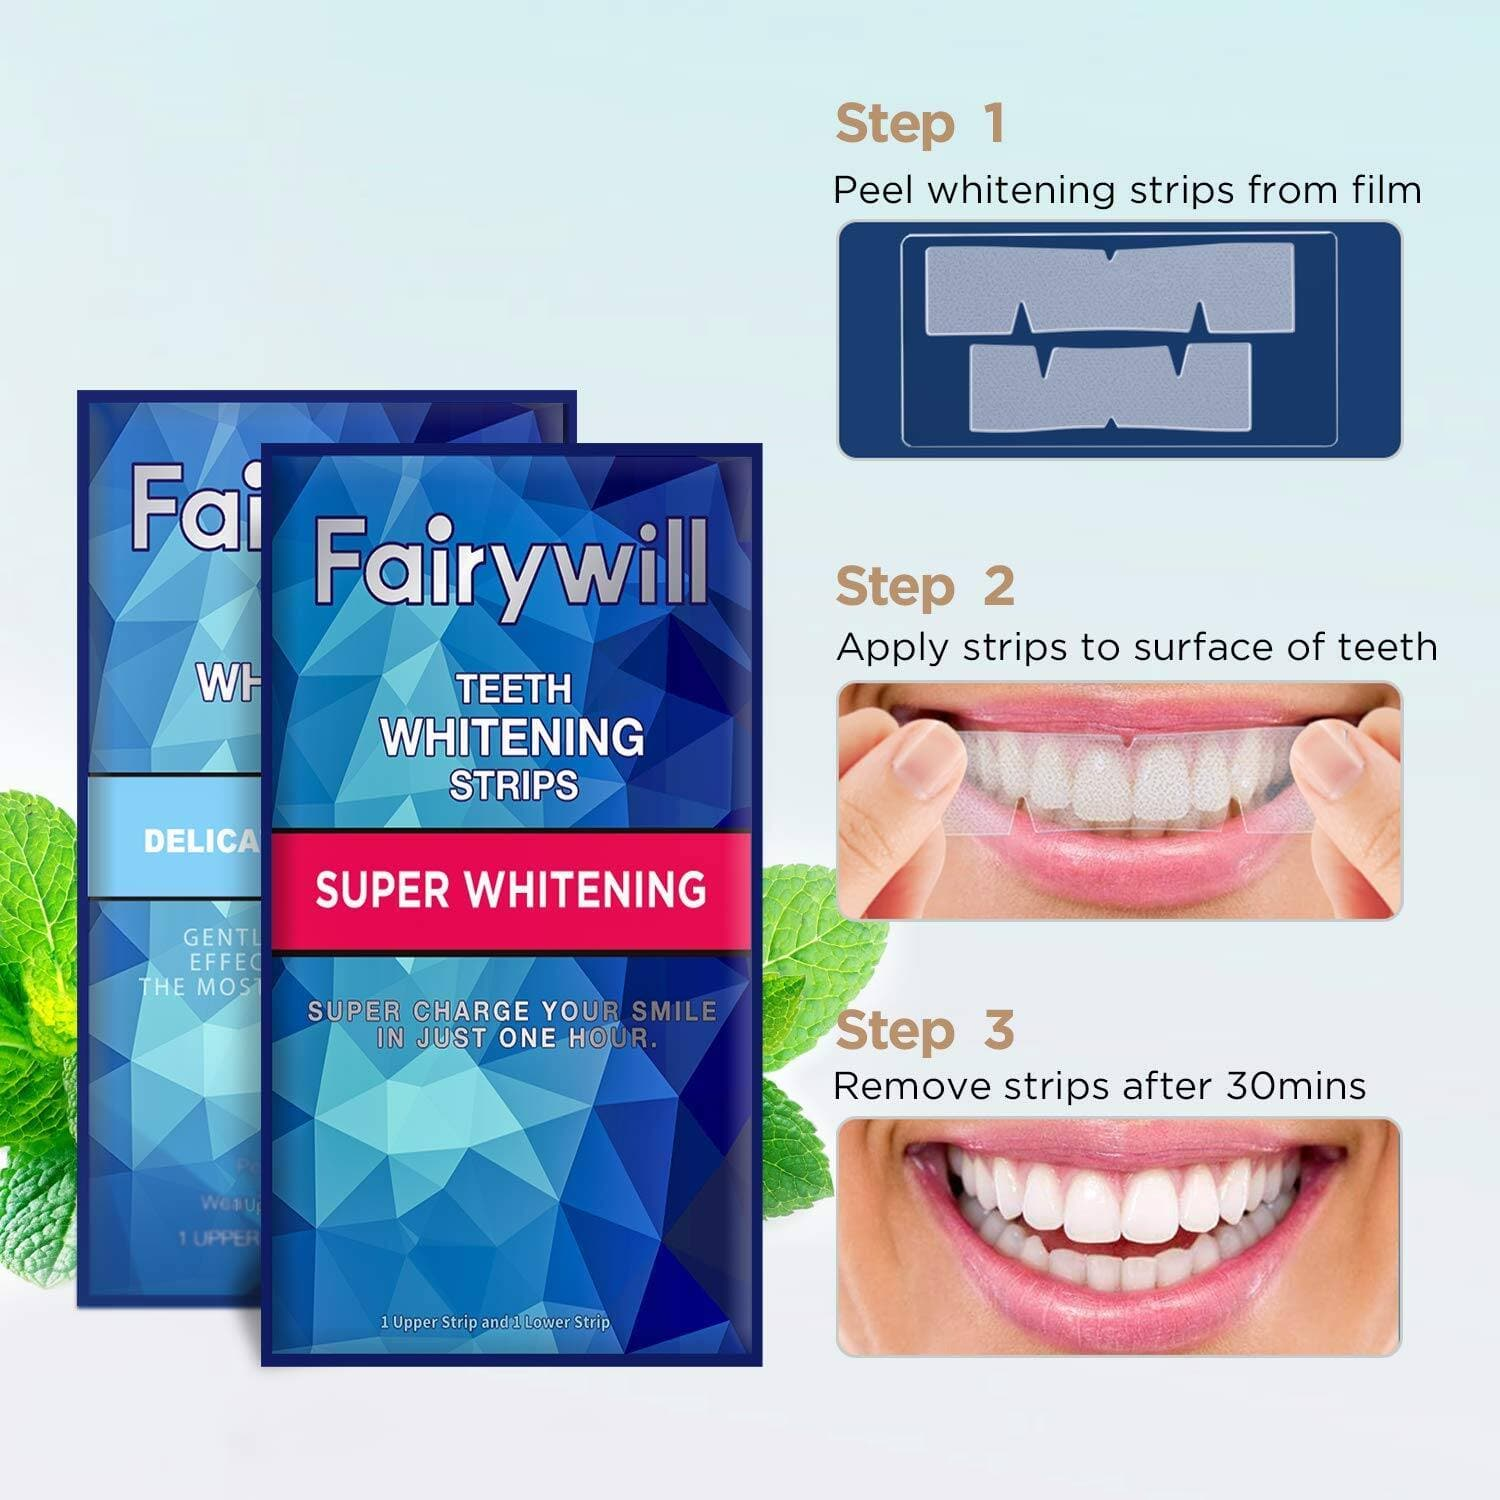 Teeth Whitening Strips for Sensitive Teeth-Reduced Sensitivity and Gentle and Safe for Enamel $12.49 + FS w/PRIME